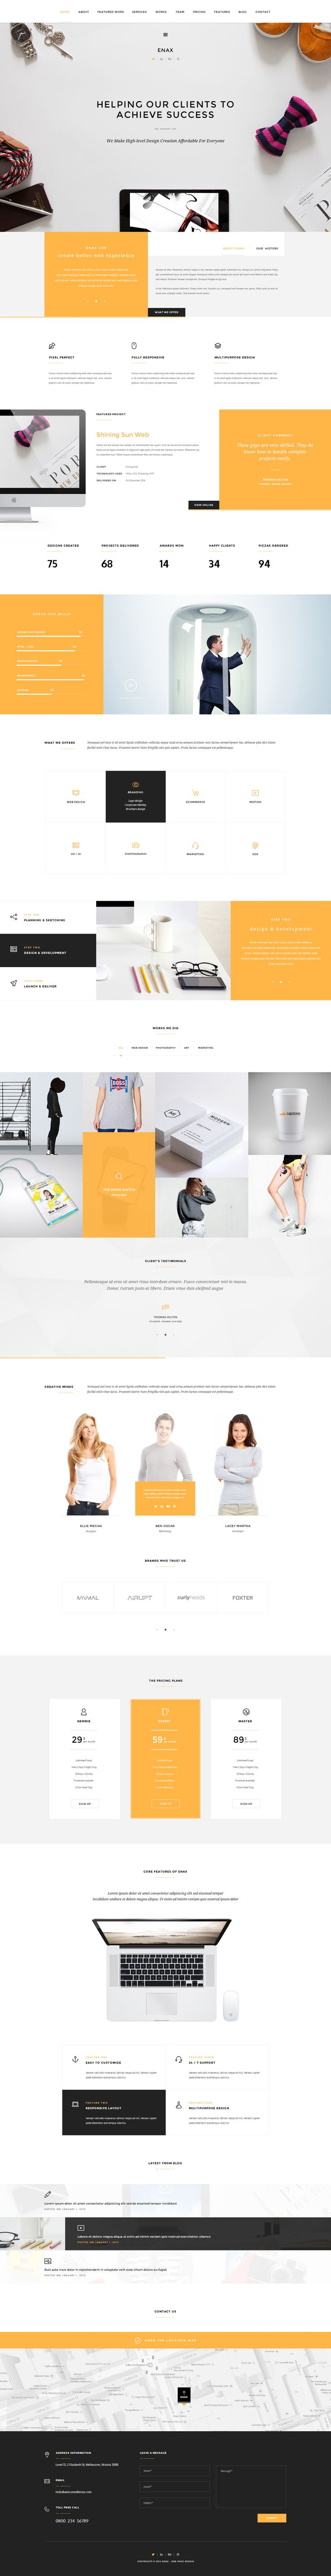 01_Home-1.jpg by enFusionThemes